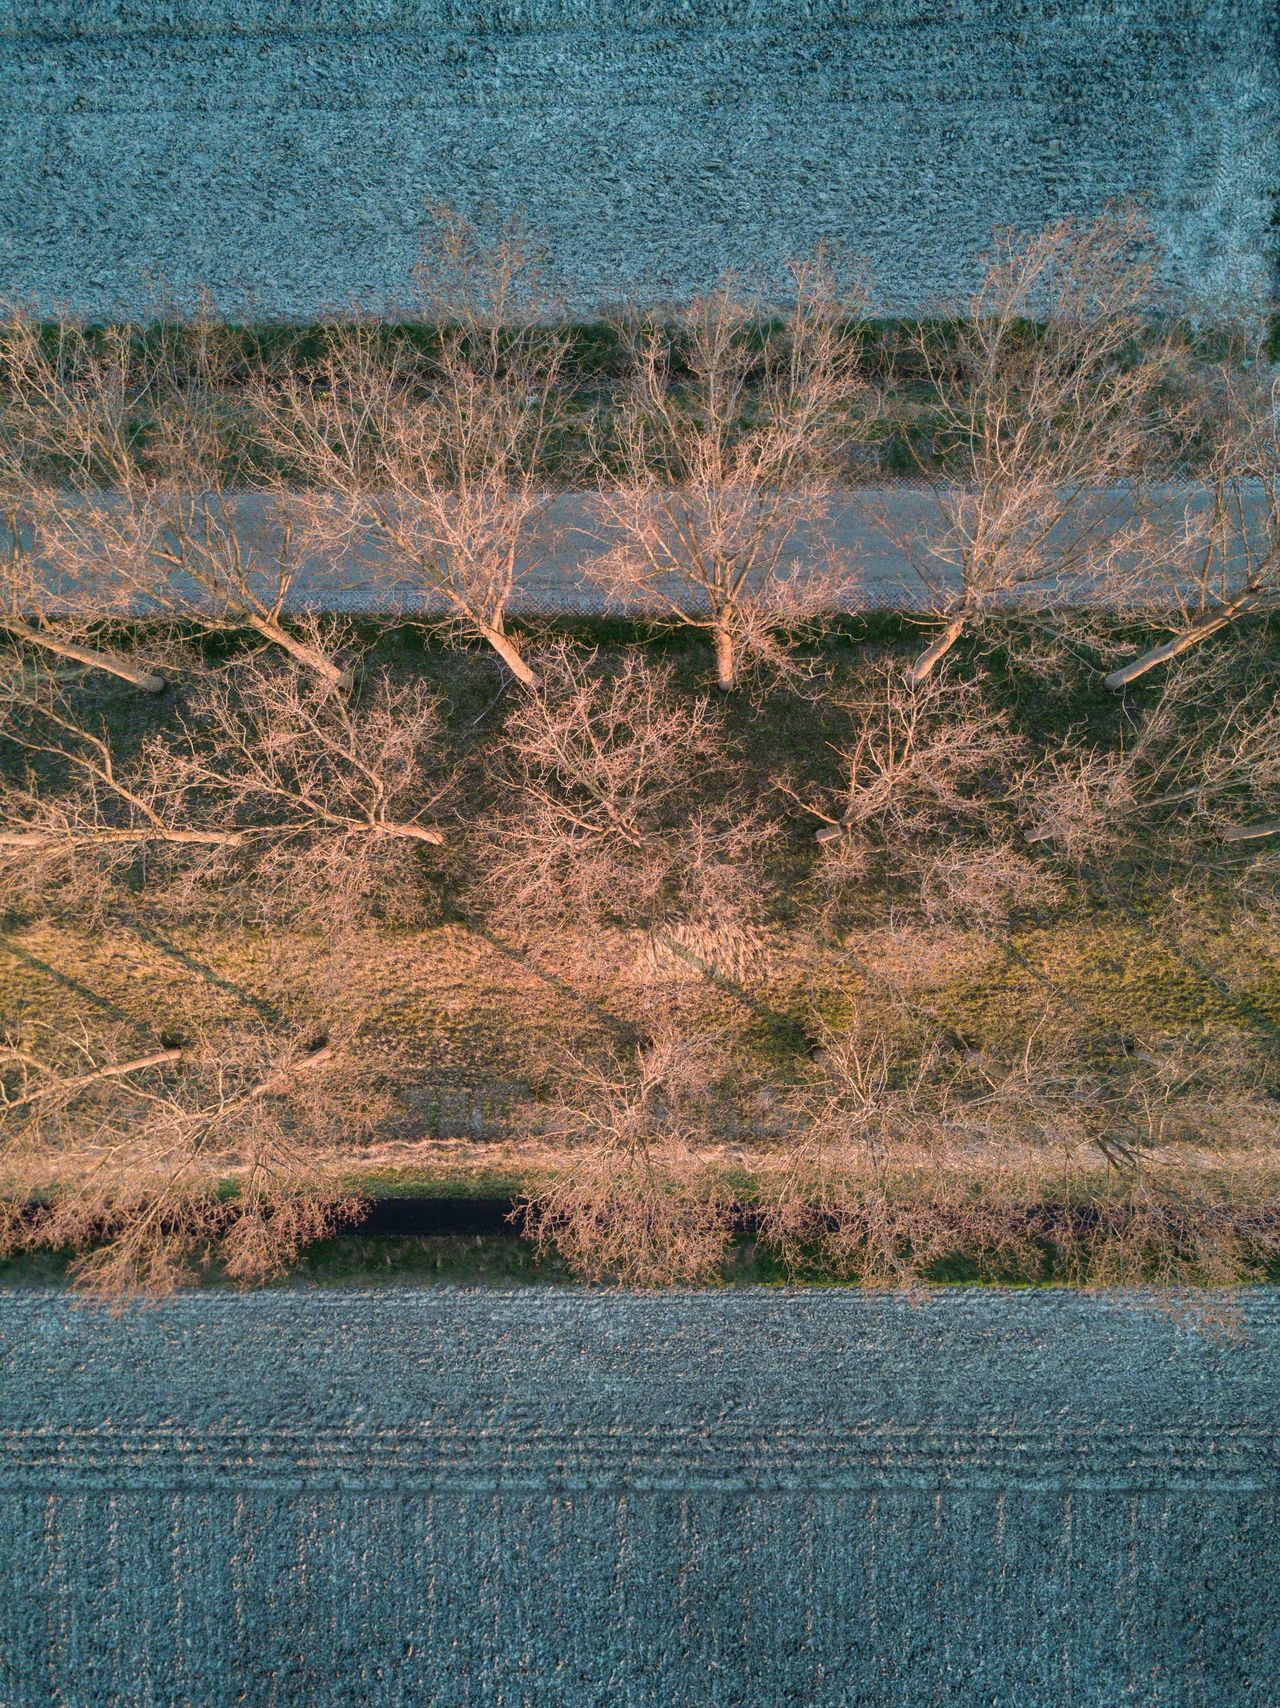 Trees in the countryside Abstract Beauty In Nature Copy Space Countryside Day Dike Drone  Farmland From Above  Lines Nature Netherlands No People Outdoors Scenics Sunset Tranquility Trees Water Winter Zeeland  Zeeuws Vlaanderen Flying High Abstract Photography EyeEm Best Shots